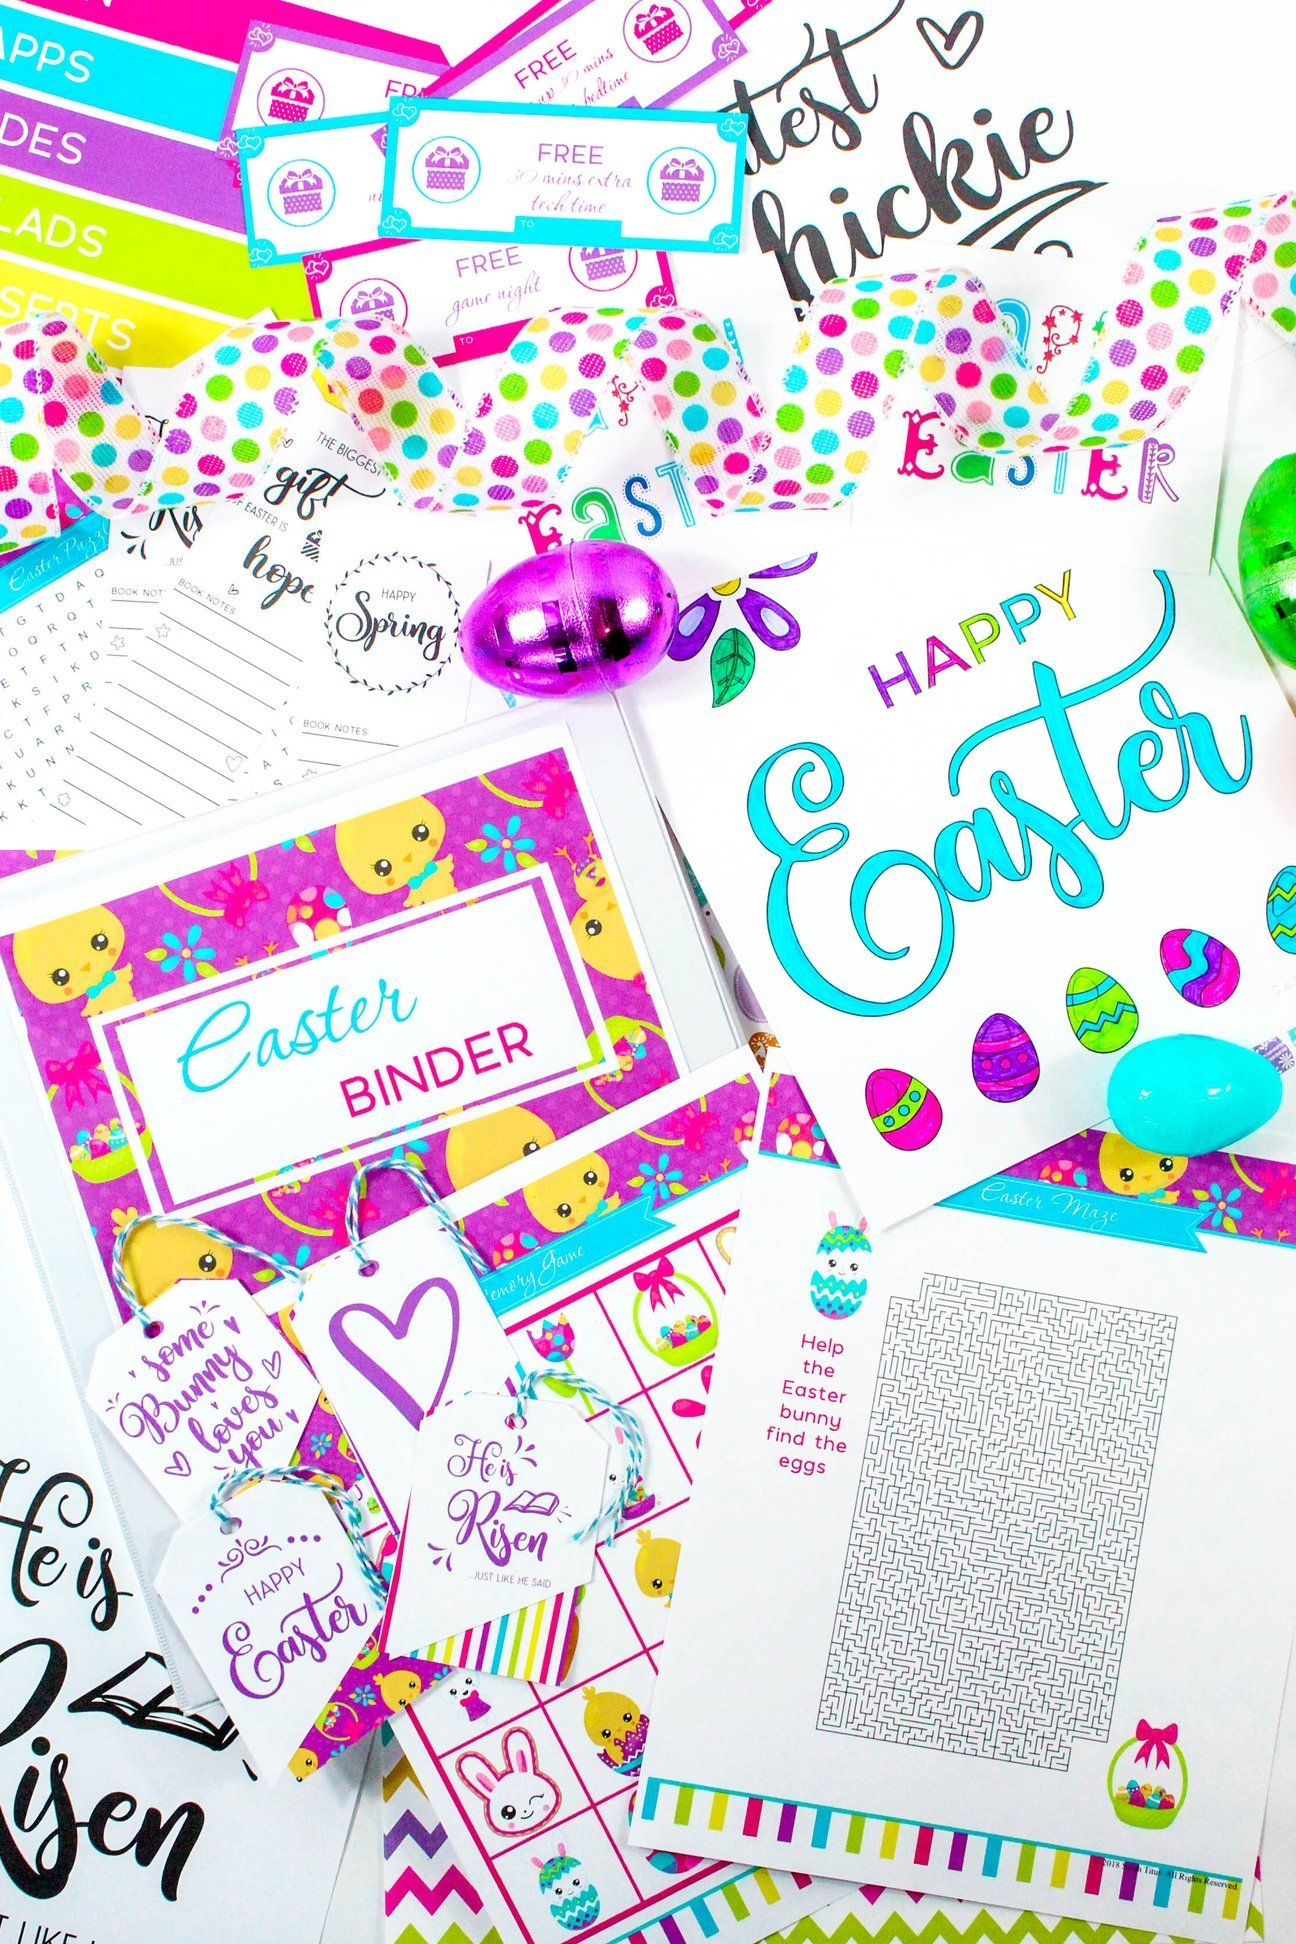 Free Easter Binder 100 Pages From Your Dinner Menu And